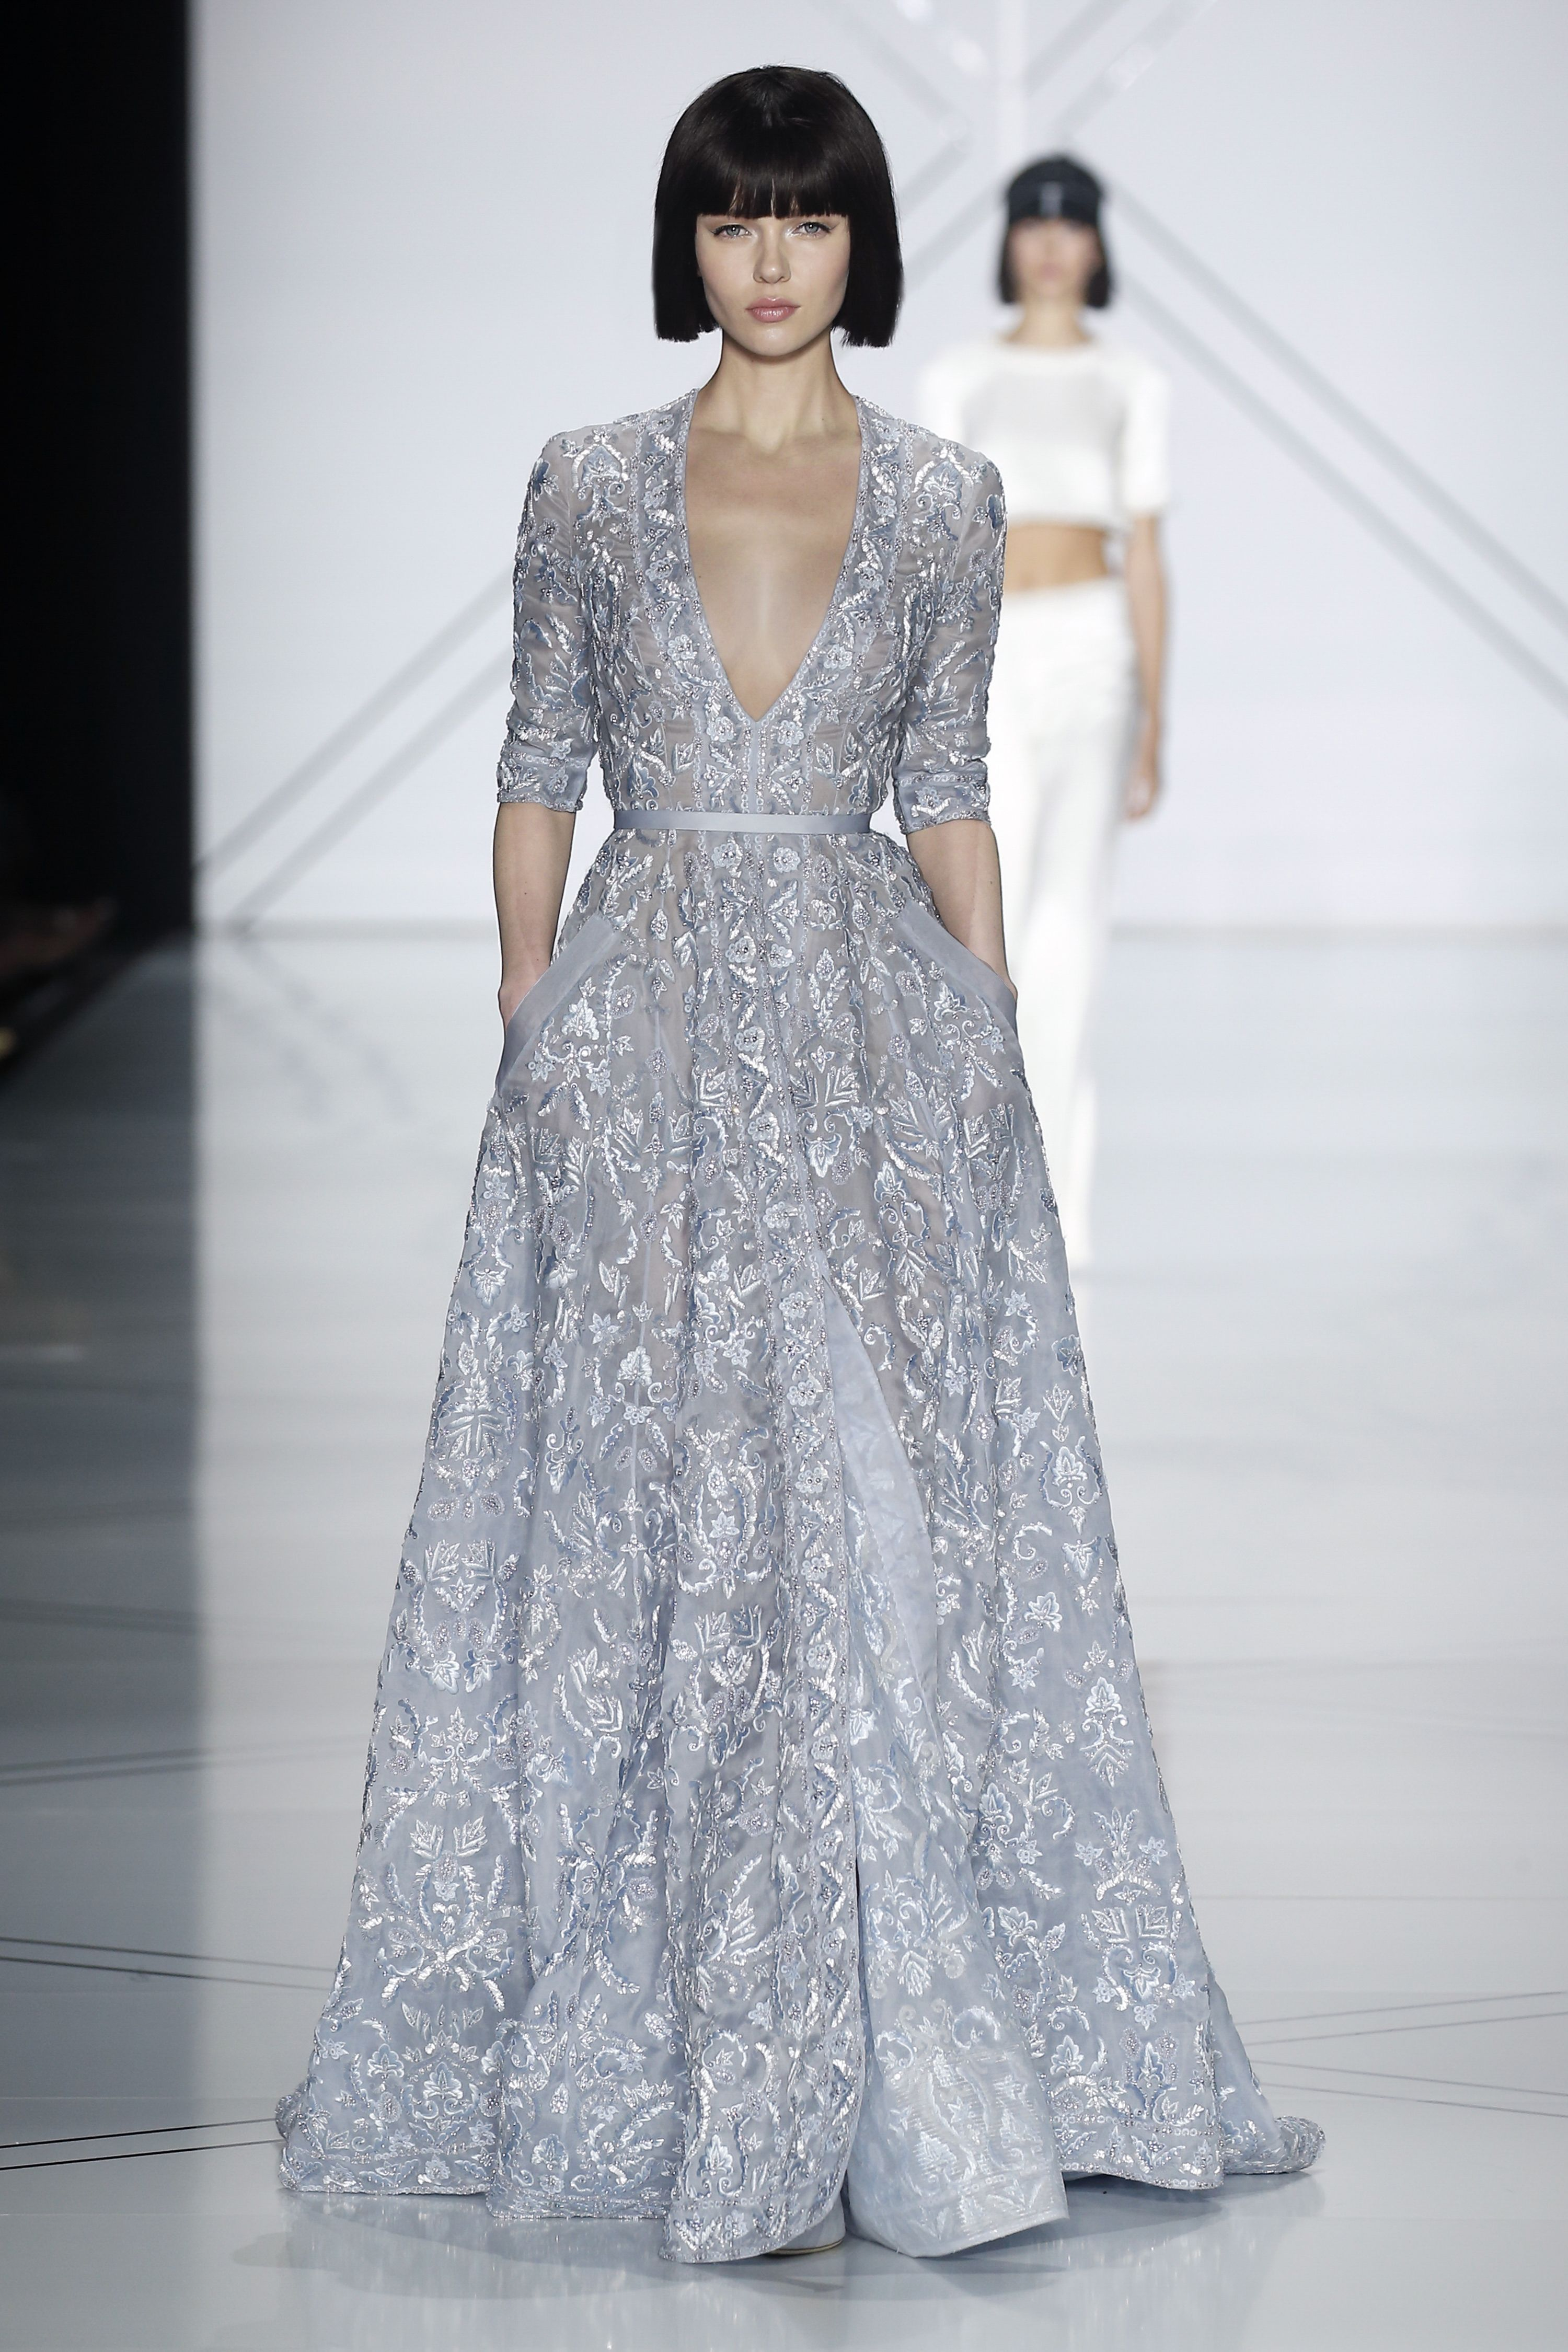 Ralph & Russo Spring/Summer 2017 Couture | Couture collection ...